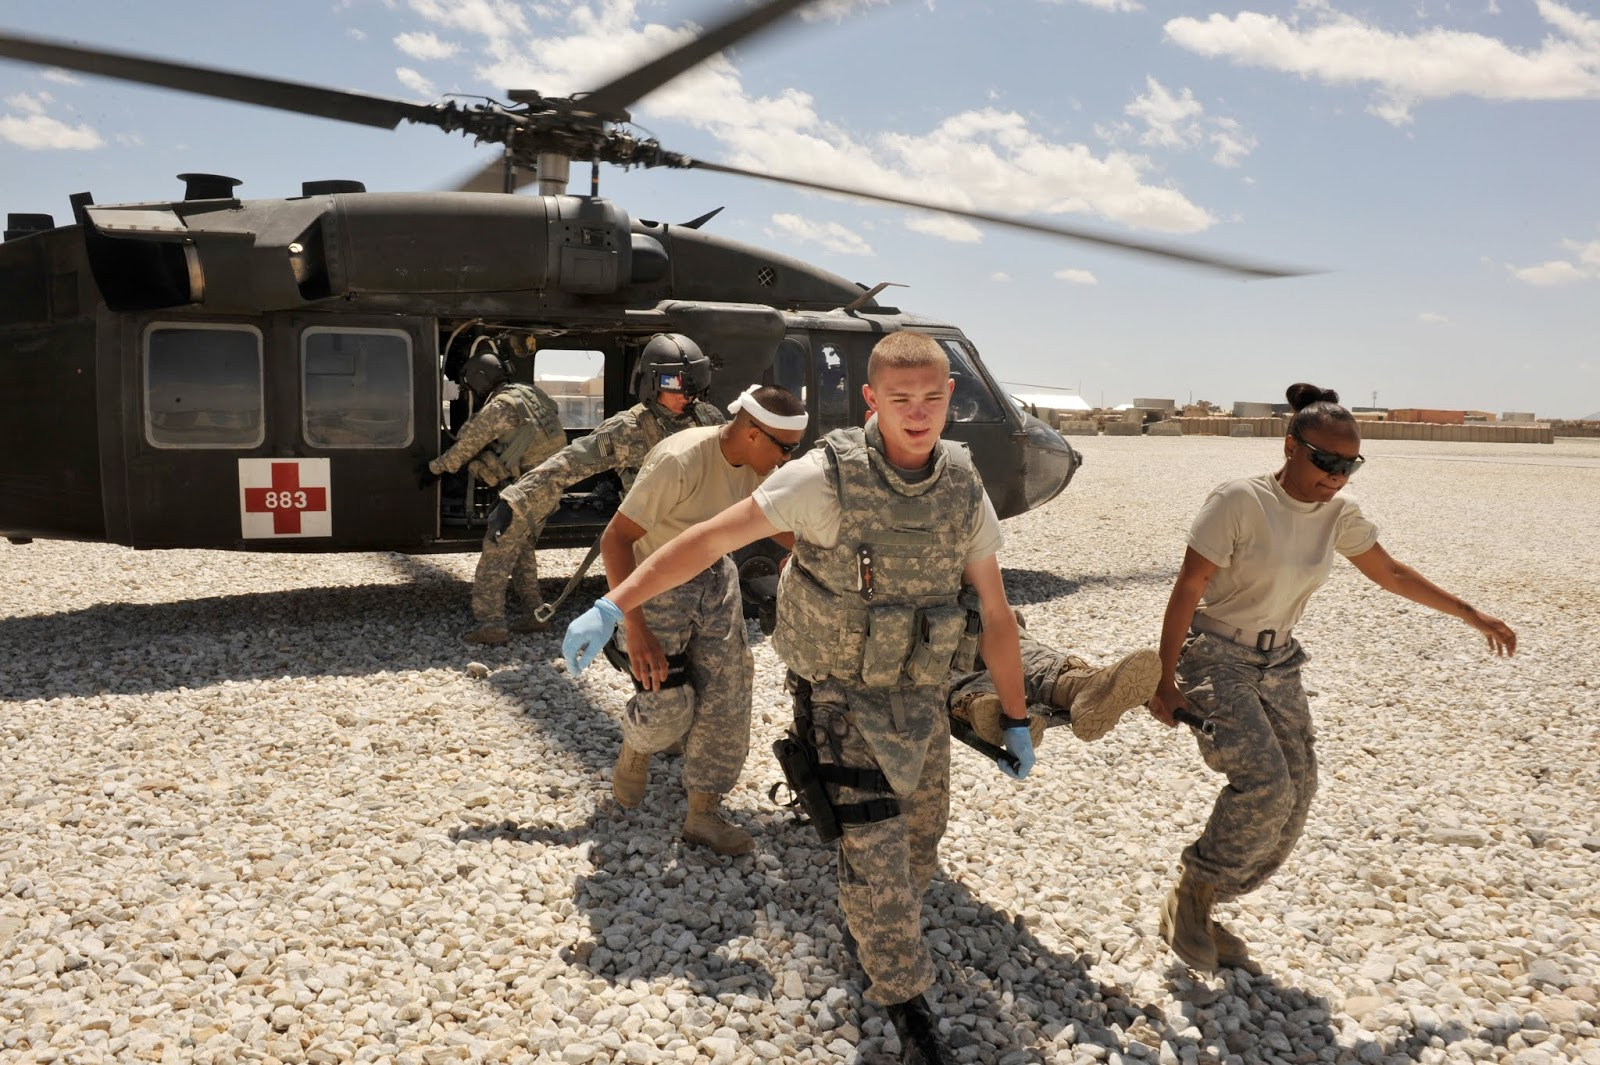 Military medical personnel remove a patient from a helicopter